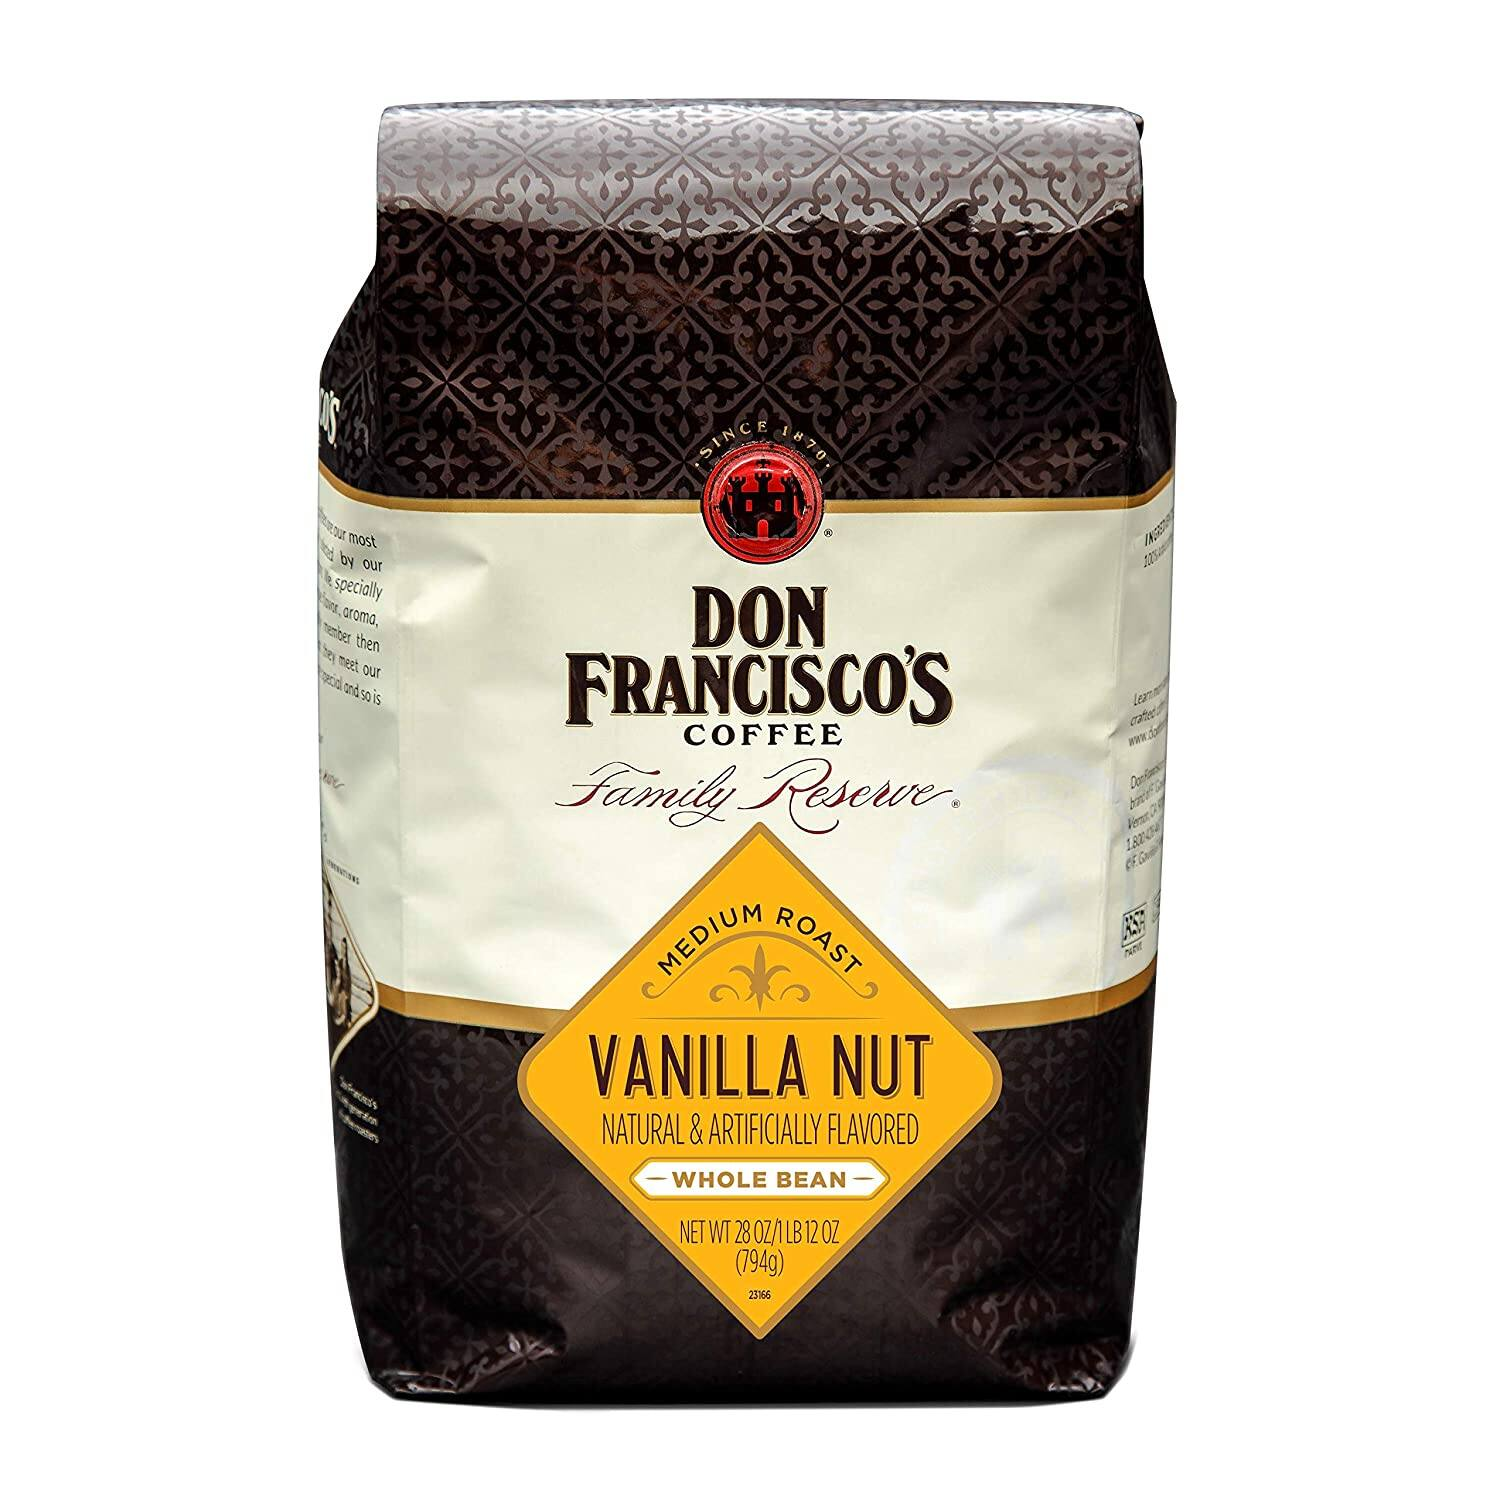 28-Oz Don Francisco's Whole Bean Coffee (Vanilla Nut)